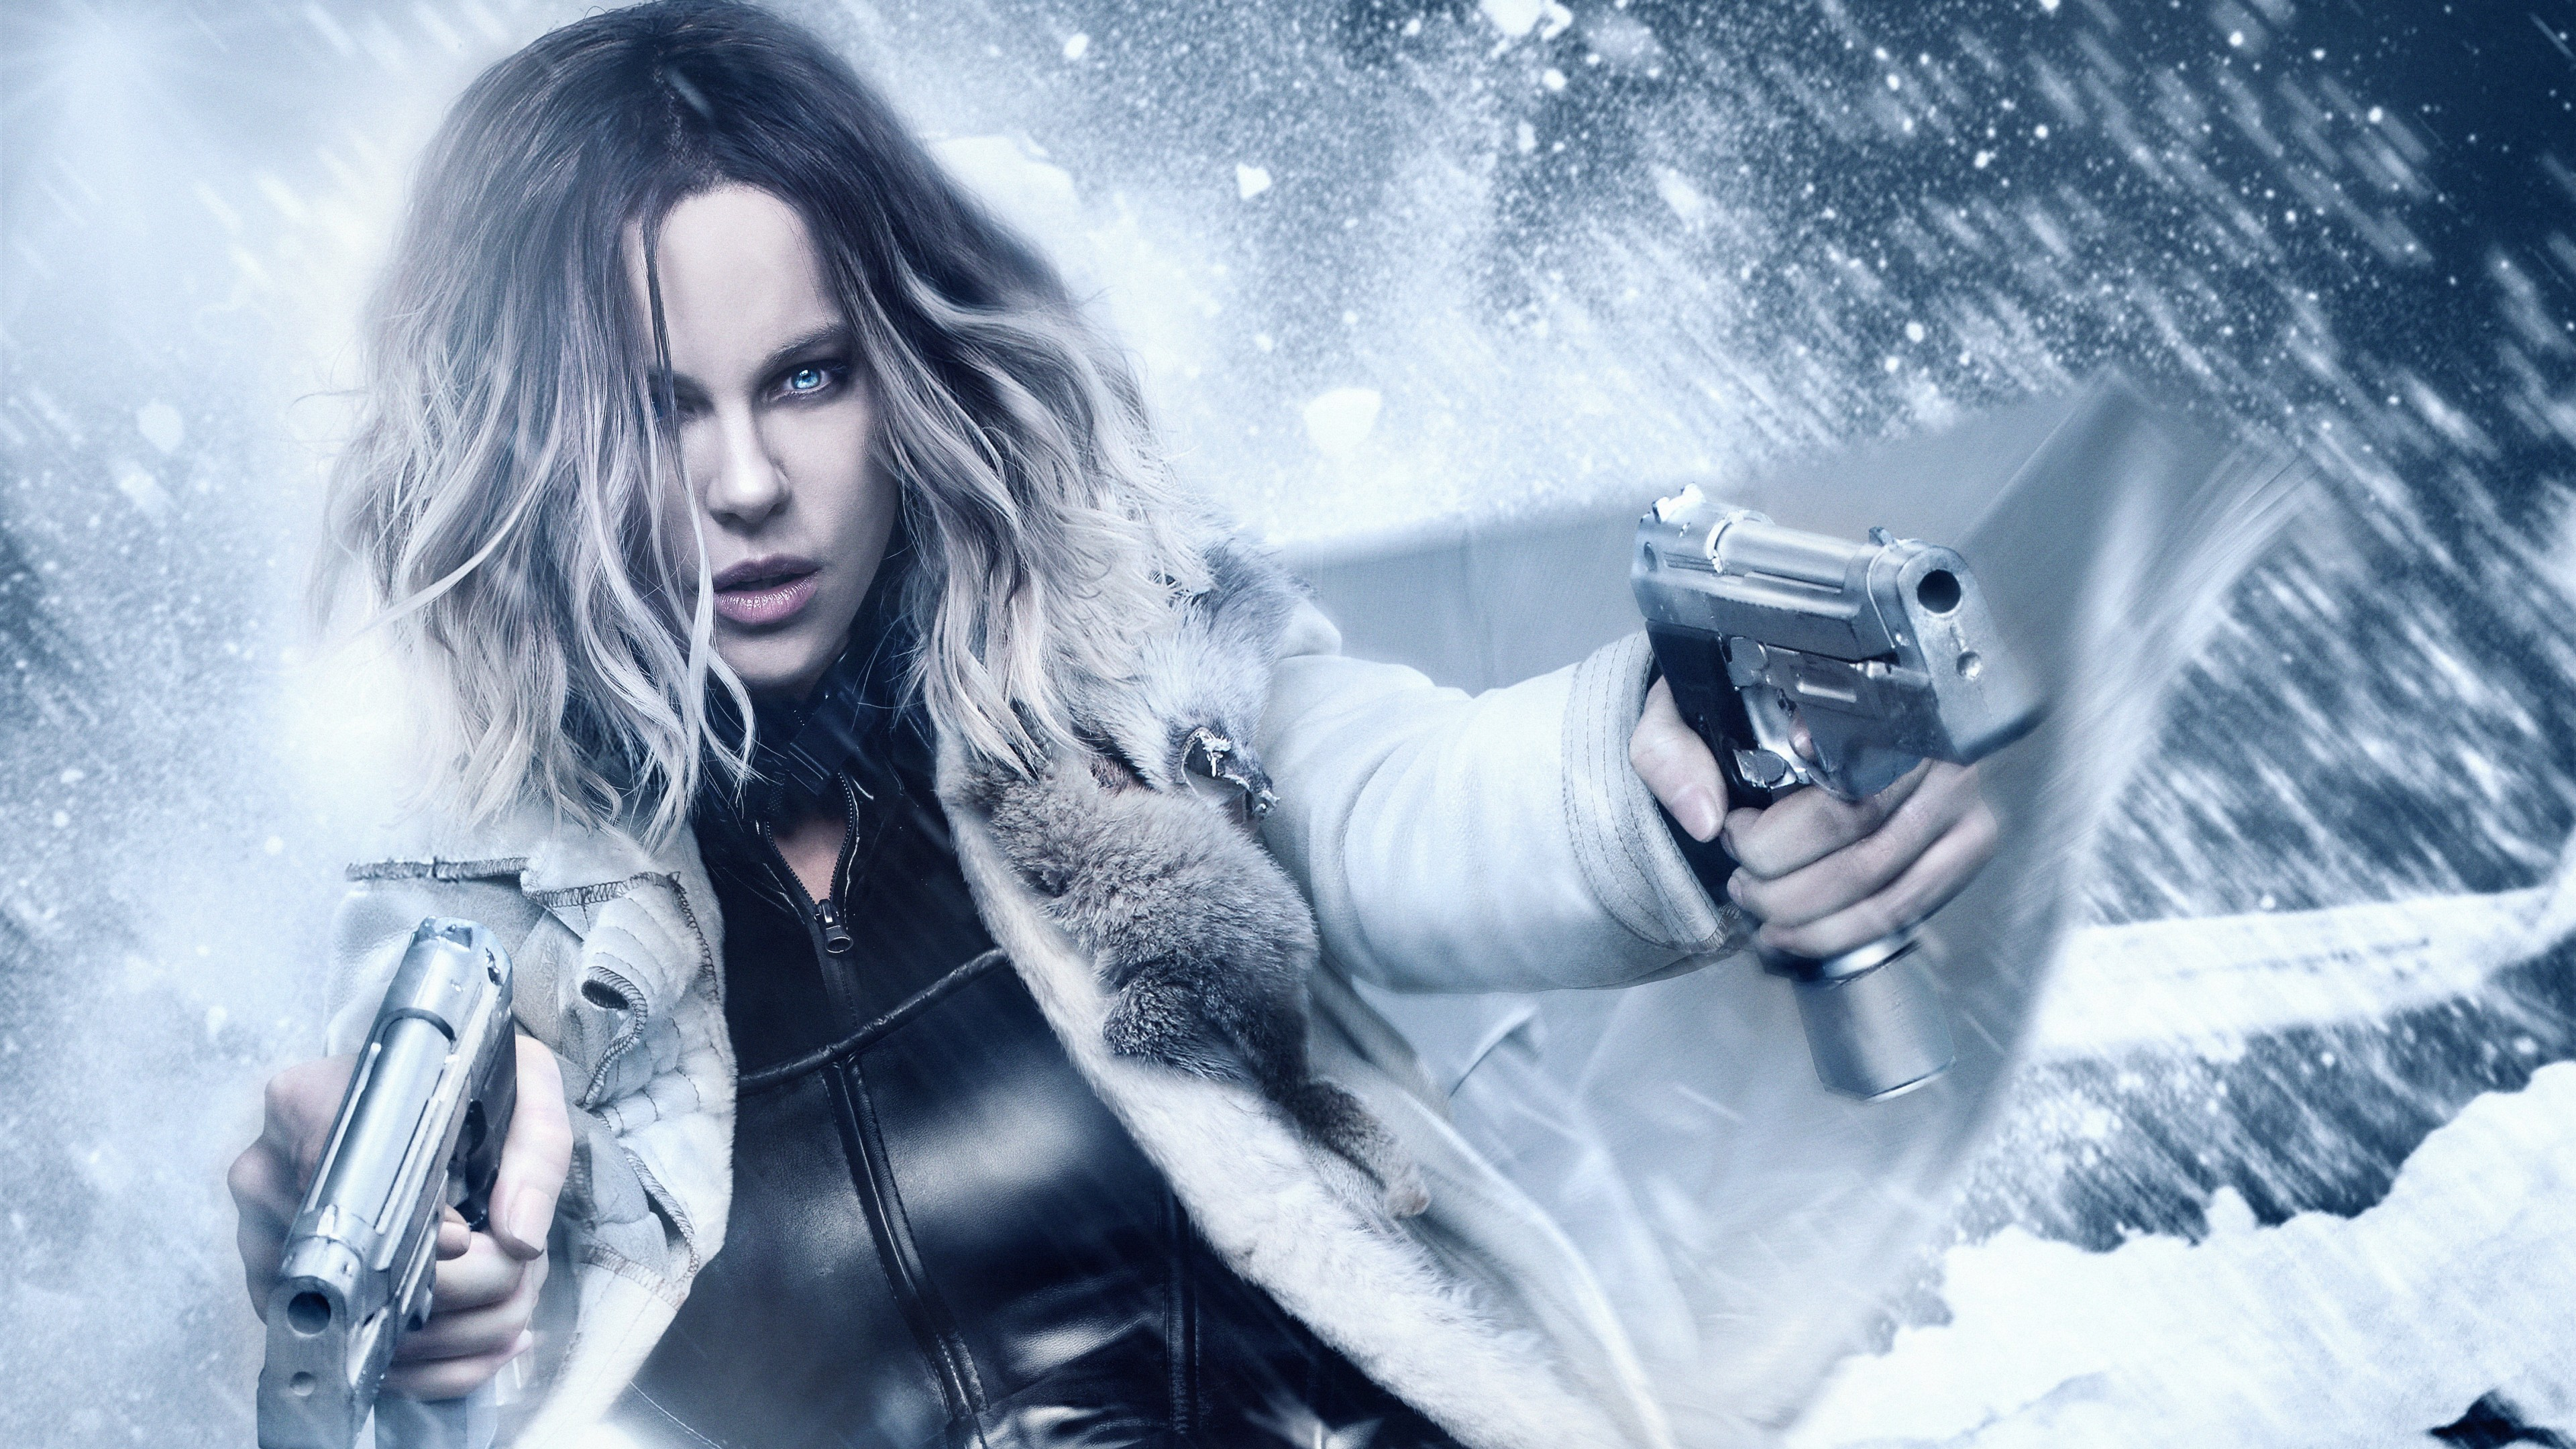 2017 underworld blood wars 1536400350 - 2017 Underworld Blood Wars - underworld blood wars wallpapers, movies wallpapers, 2017 movies wallpapers